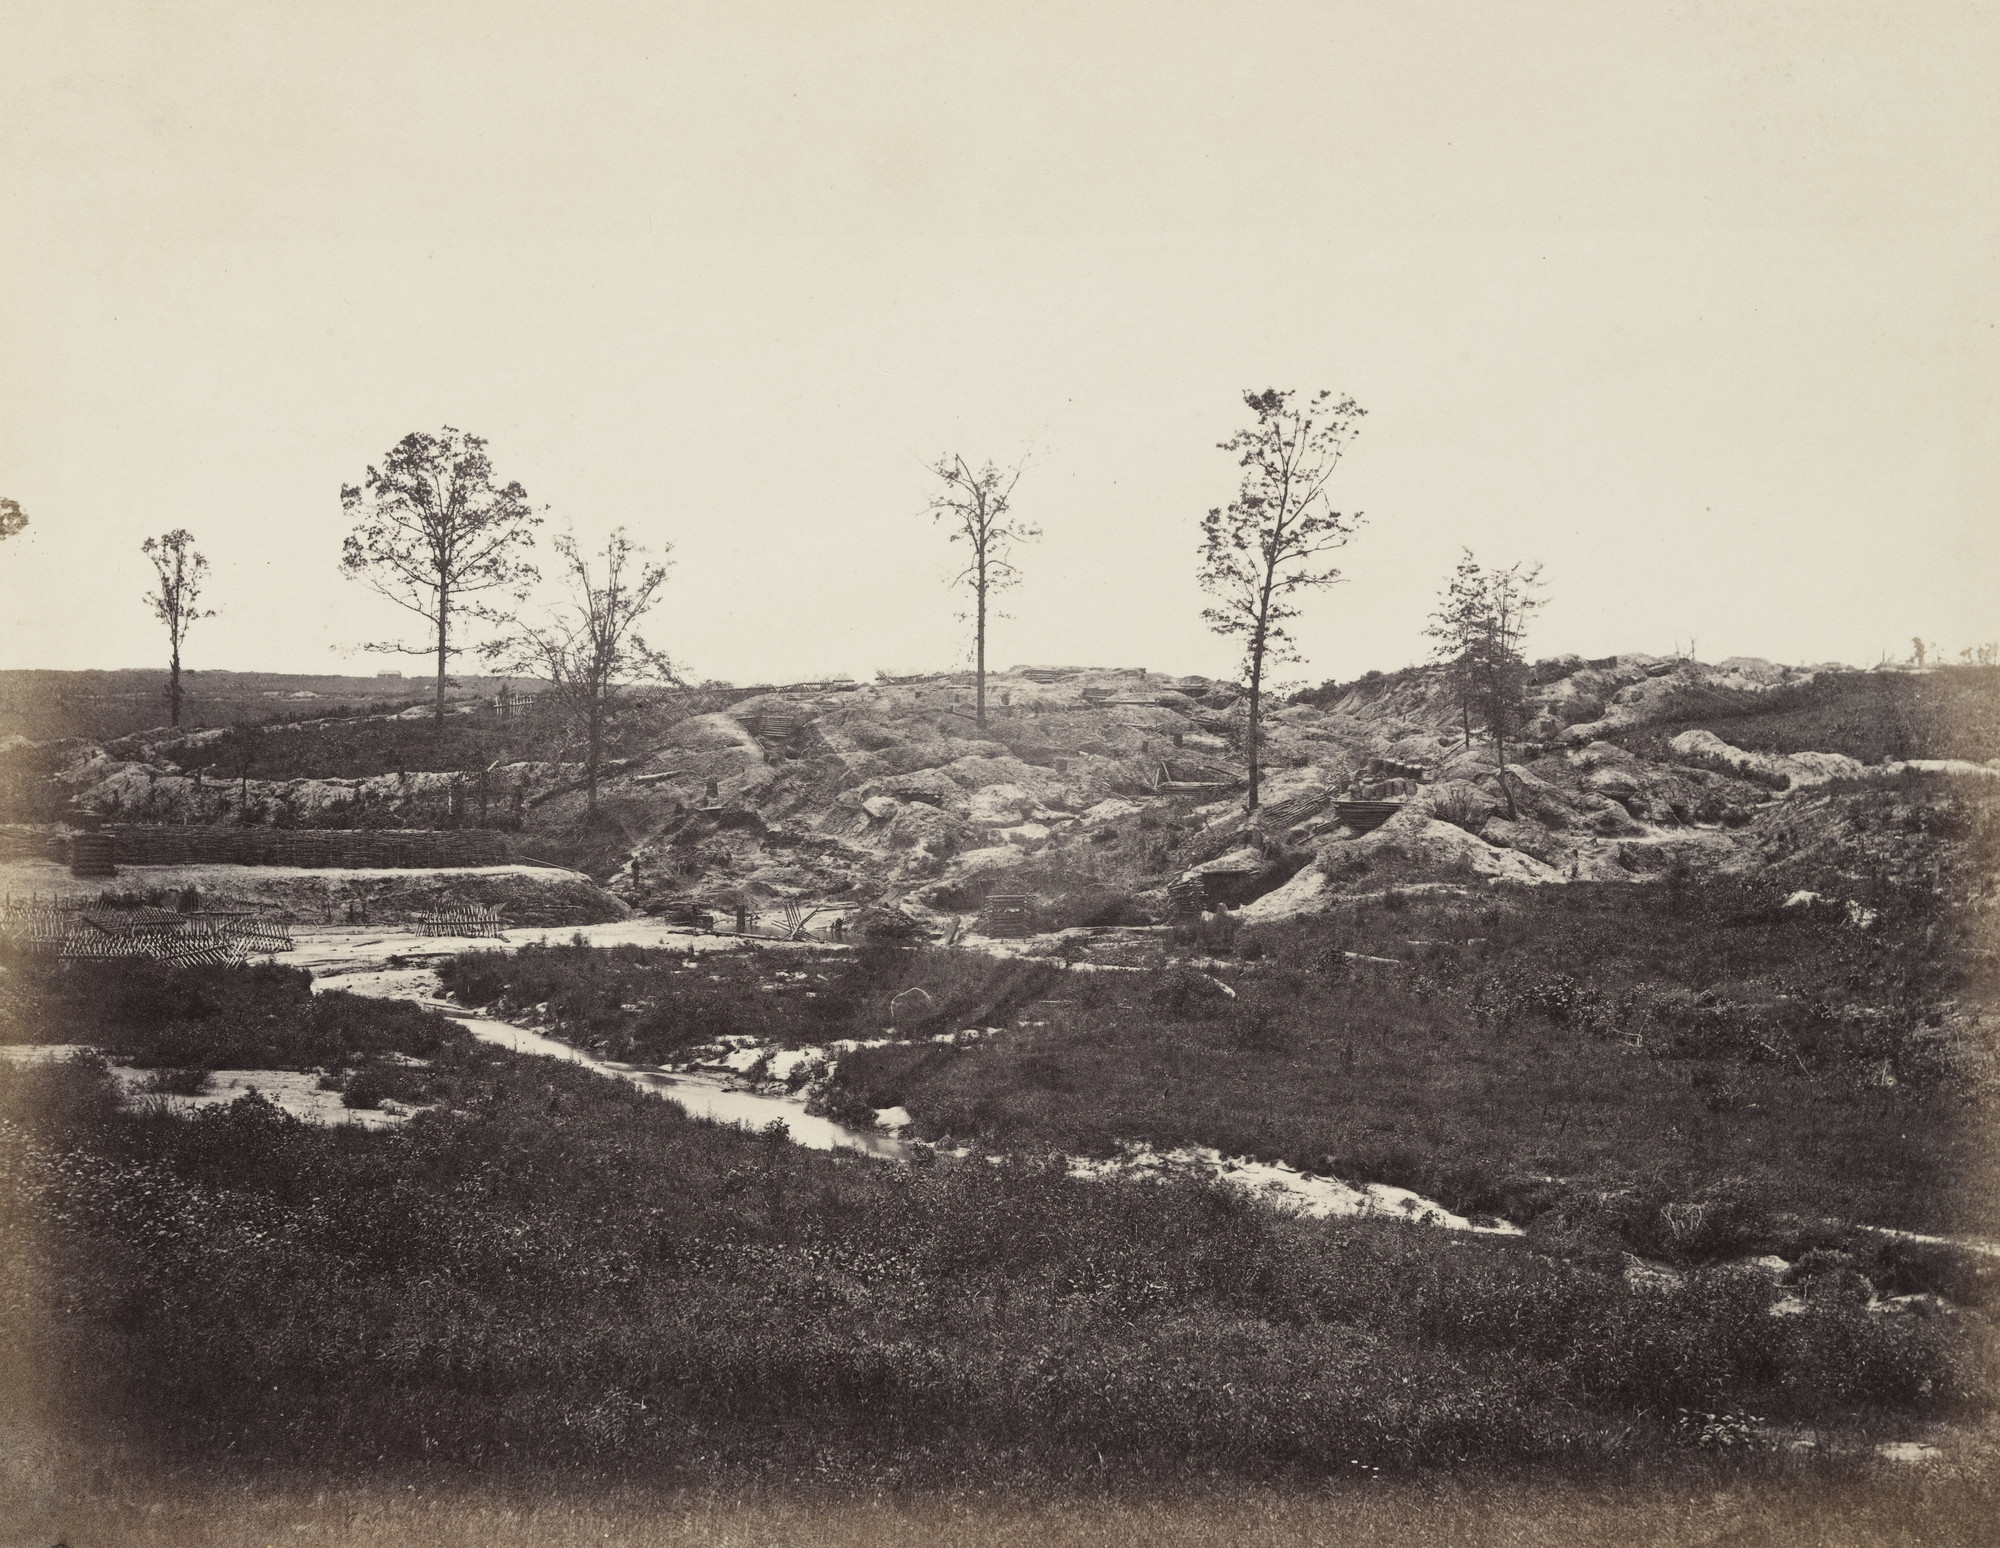 Alexander Gardner, Timothy O'Sullivan. Interior view of the Confederate line (at Gracie's salient). May, 1865